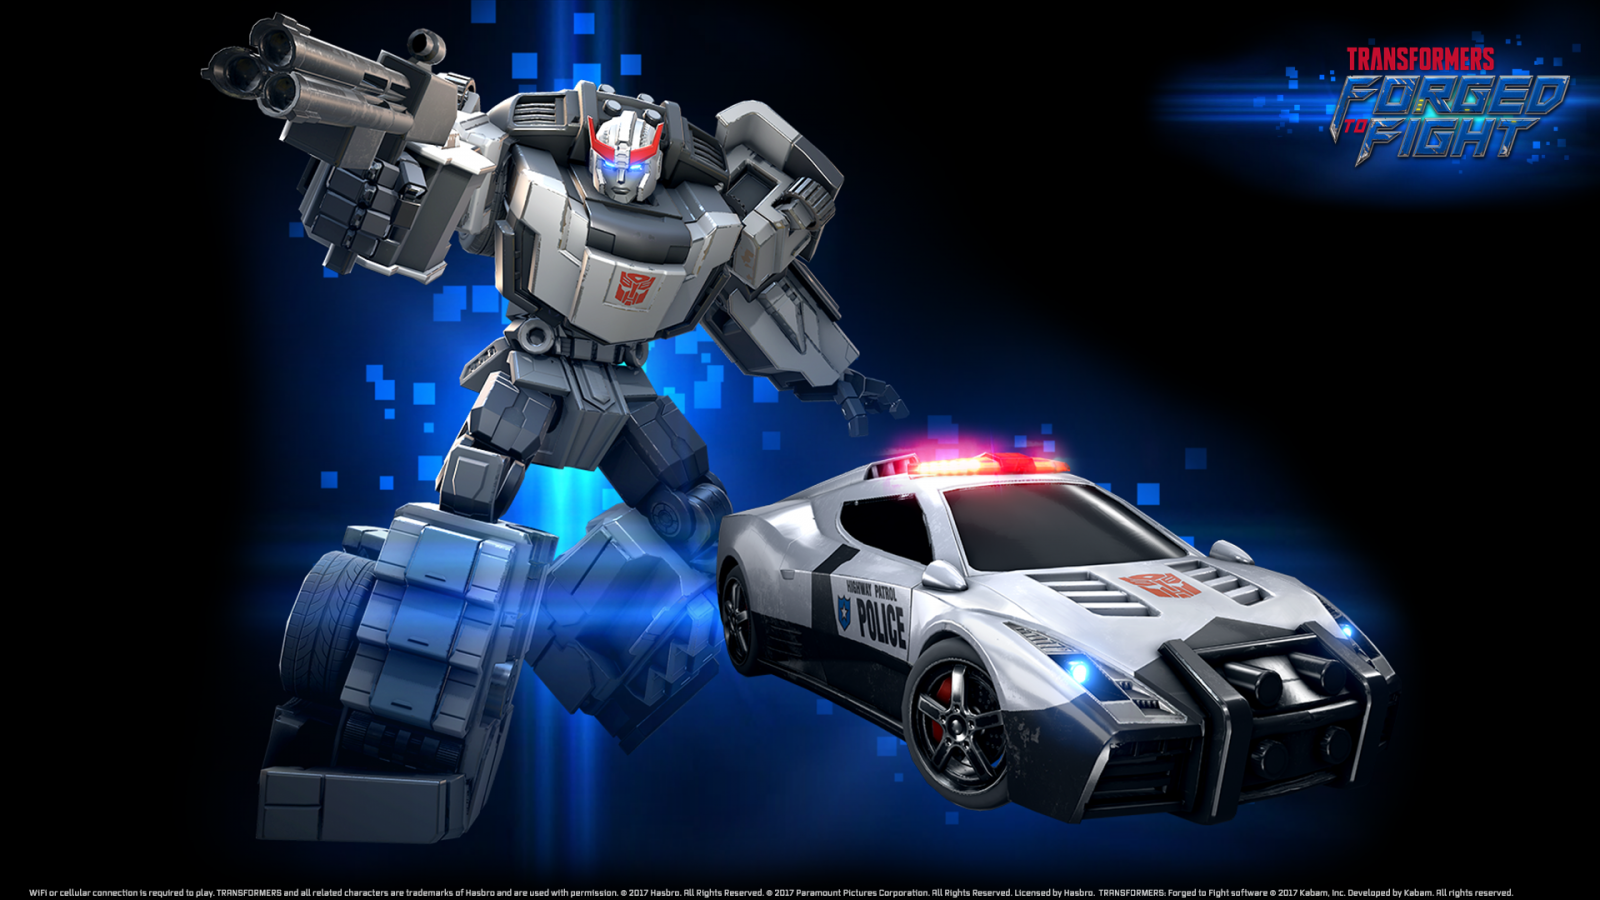 Transformers News: Autobot Prowl Joins Transformers: Forged to Fight - Interview, Details and More